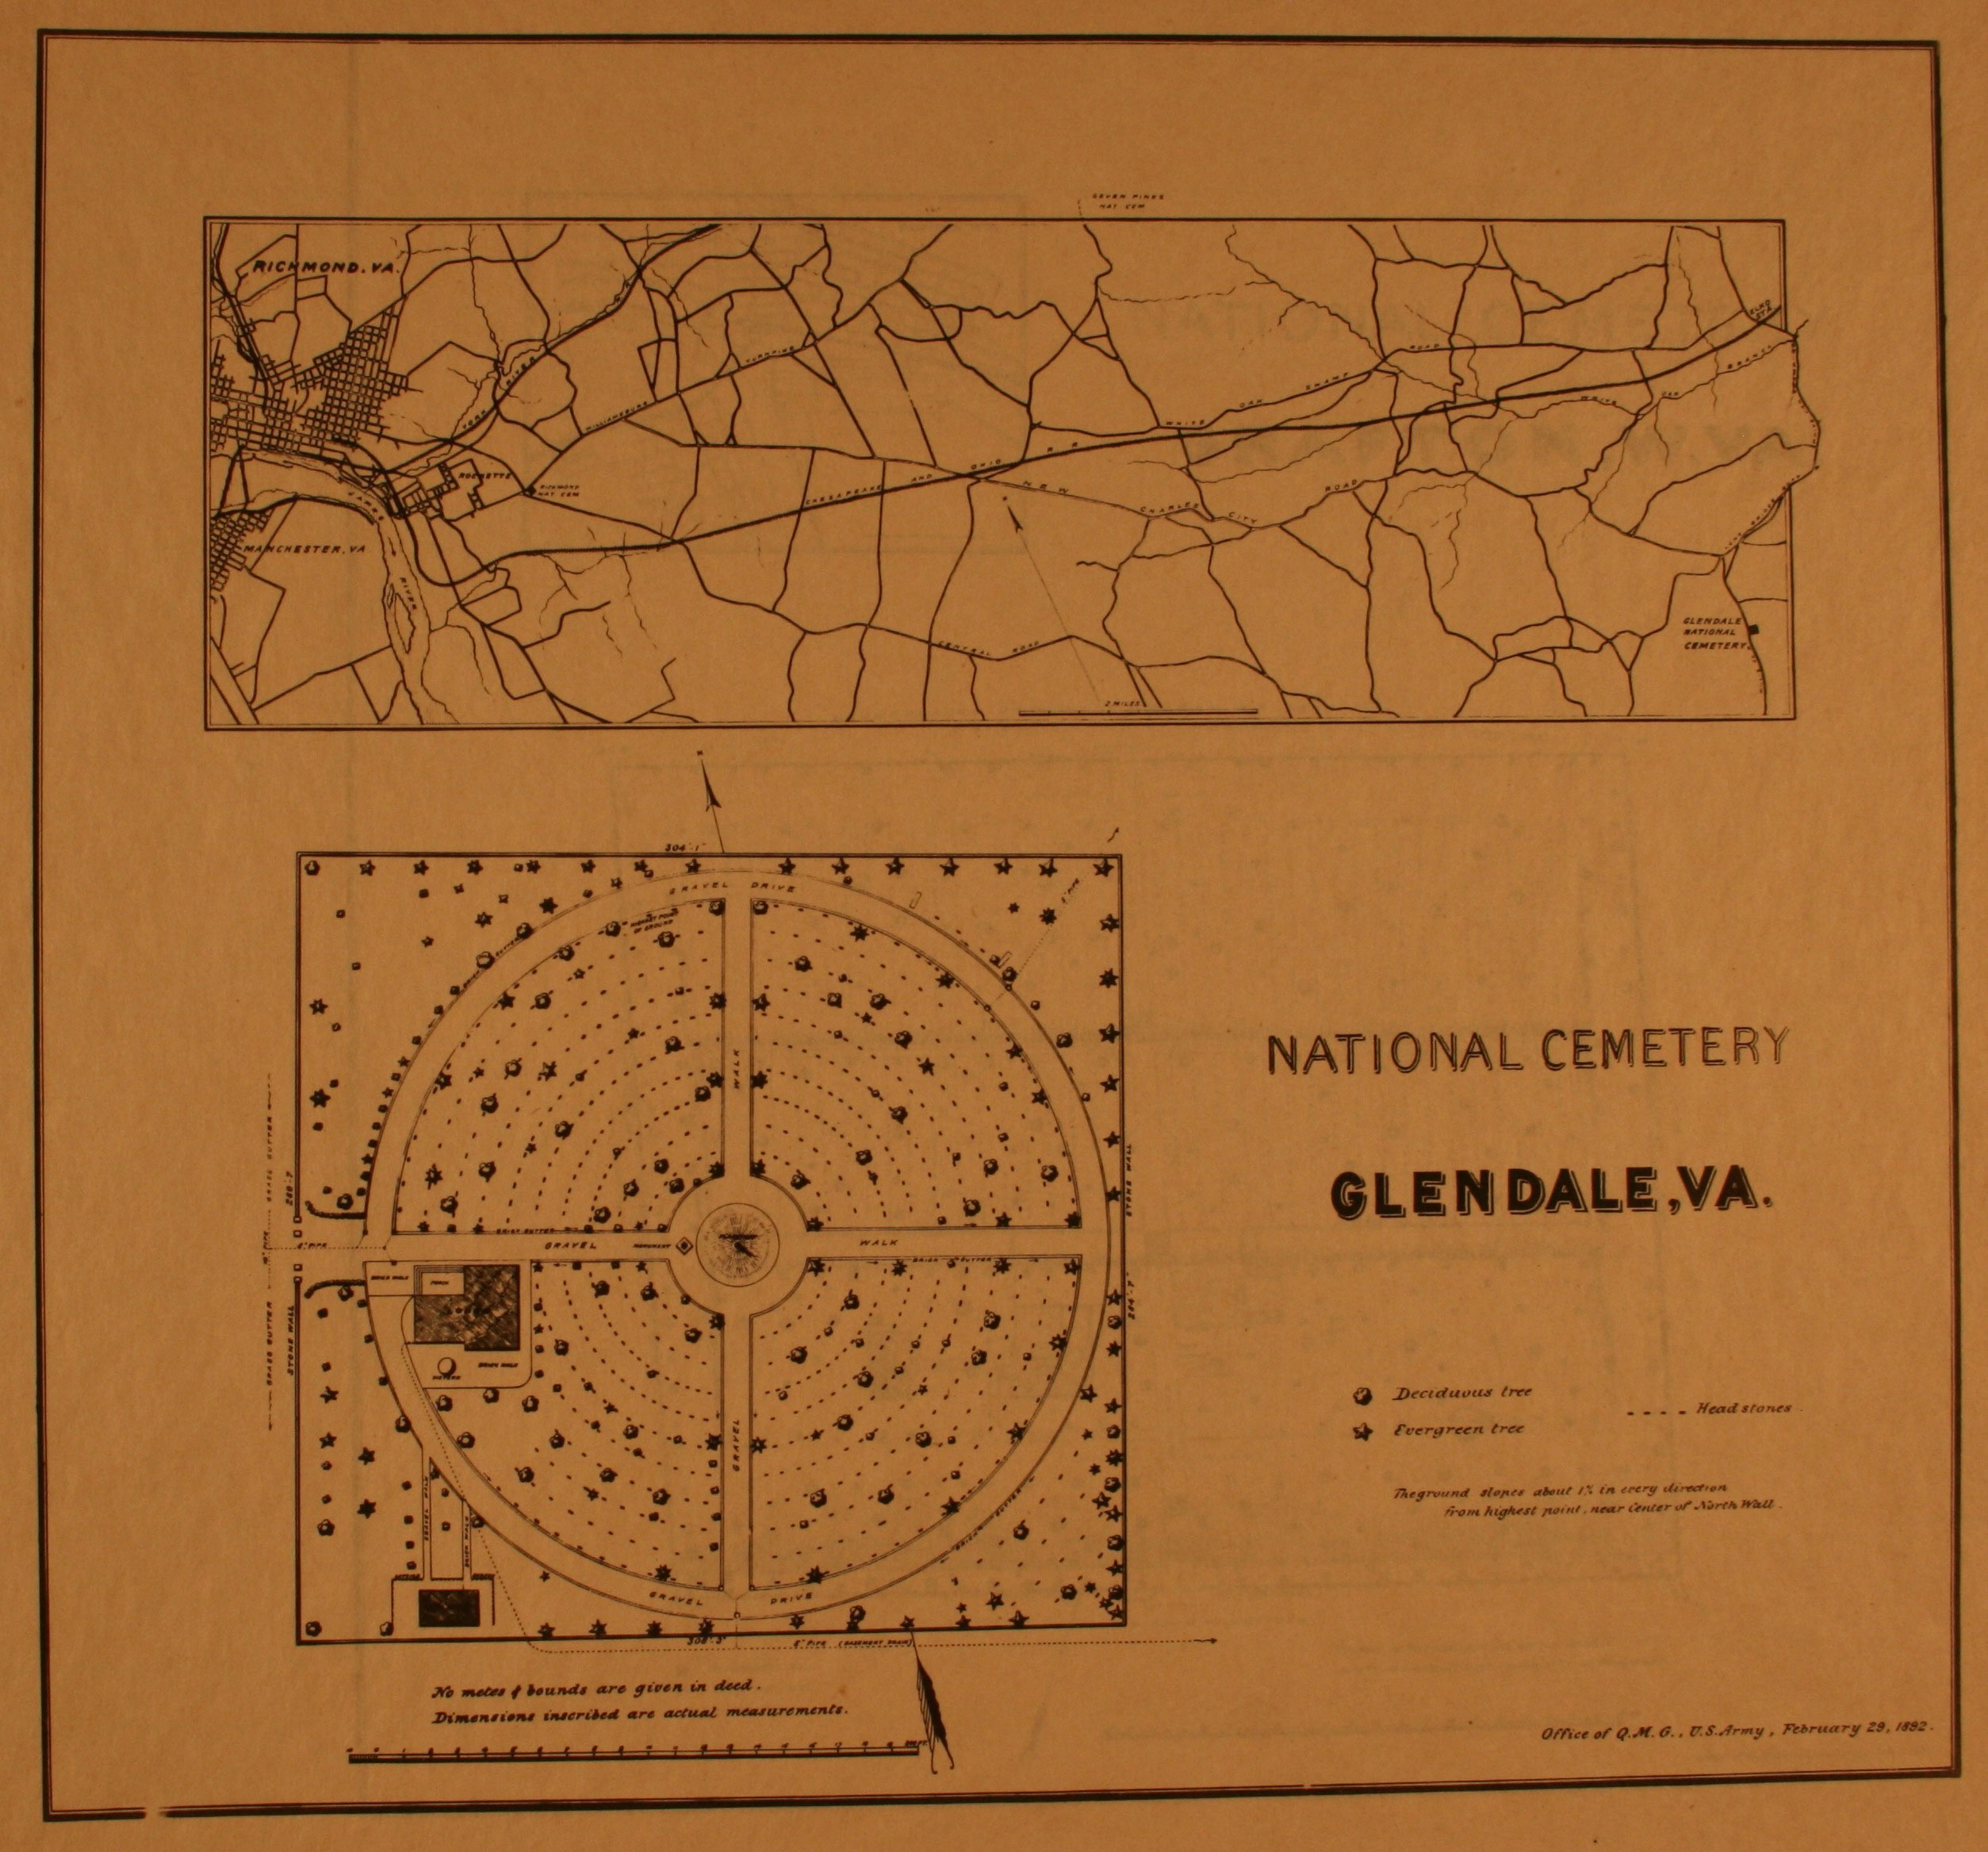 Text Only--Civil War Era National Cemeteries: Discover Our ... on the saddest acre section 60, arlington national cemetery section 21, arlington national cemetery section 16, arlington national cemetery section 59, arlington national cemetery section 2, arlington national cemetery section 66, arlington national cemetery section 64, arlington national cemetery section 1,